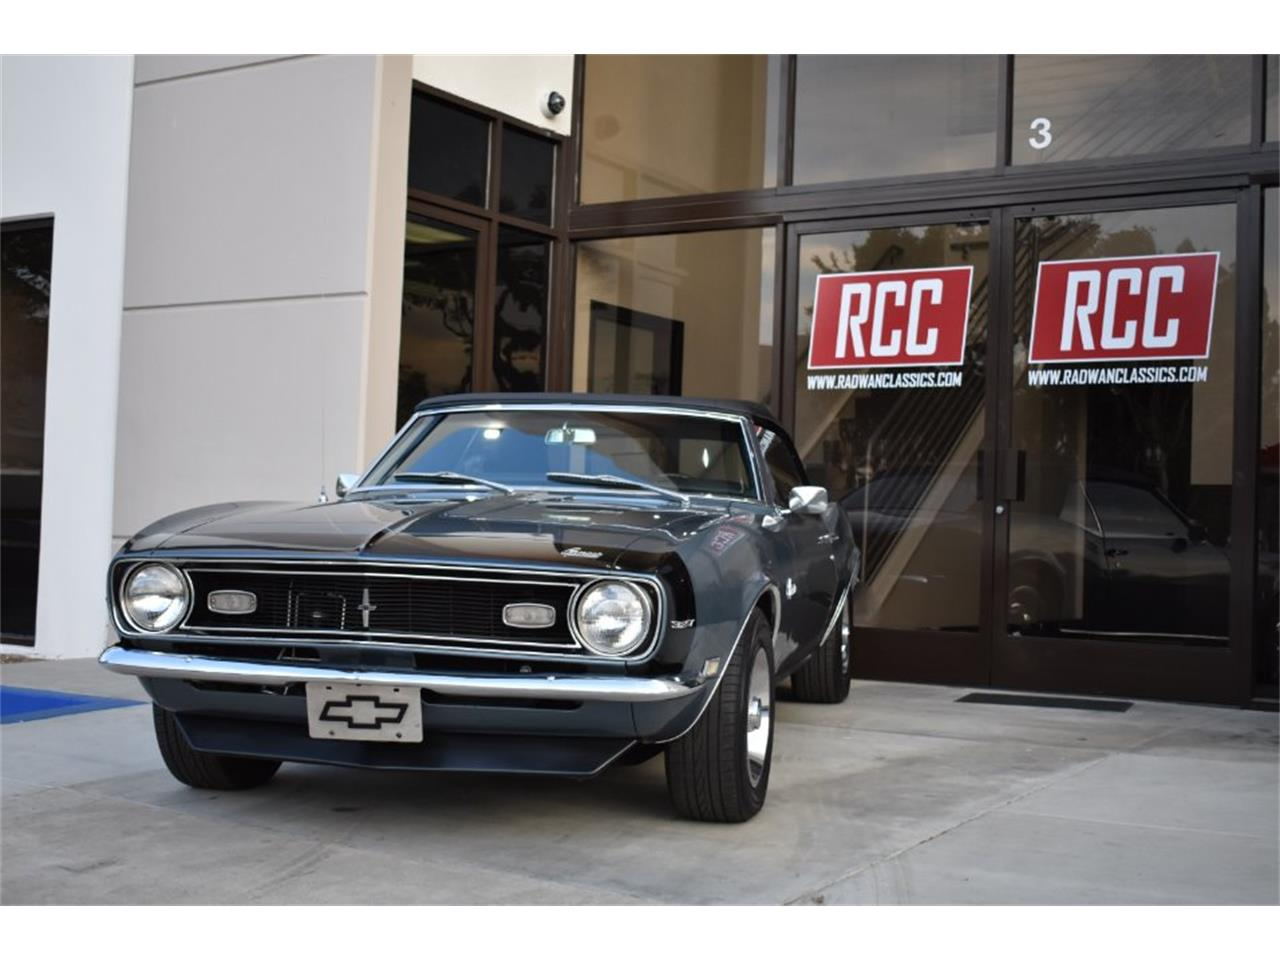 Large Picture of Classic 1968 Camaro located in California - $47,900.00 Offered by Radwan Classic Cars - MO9U